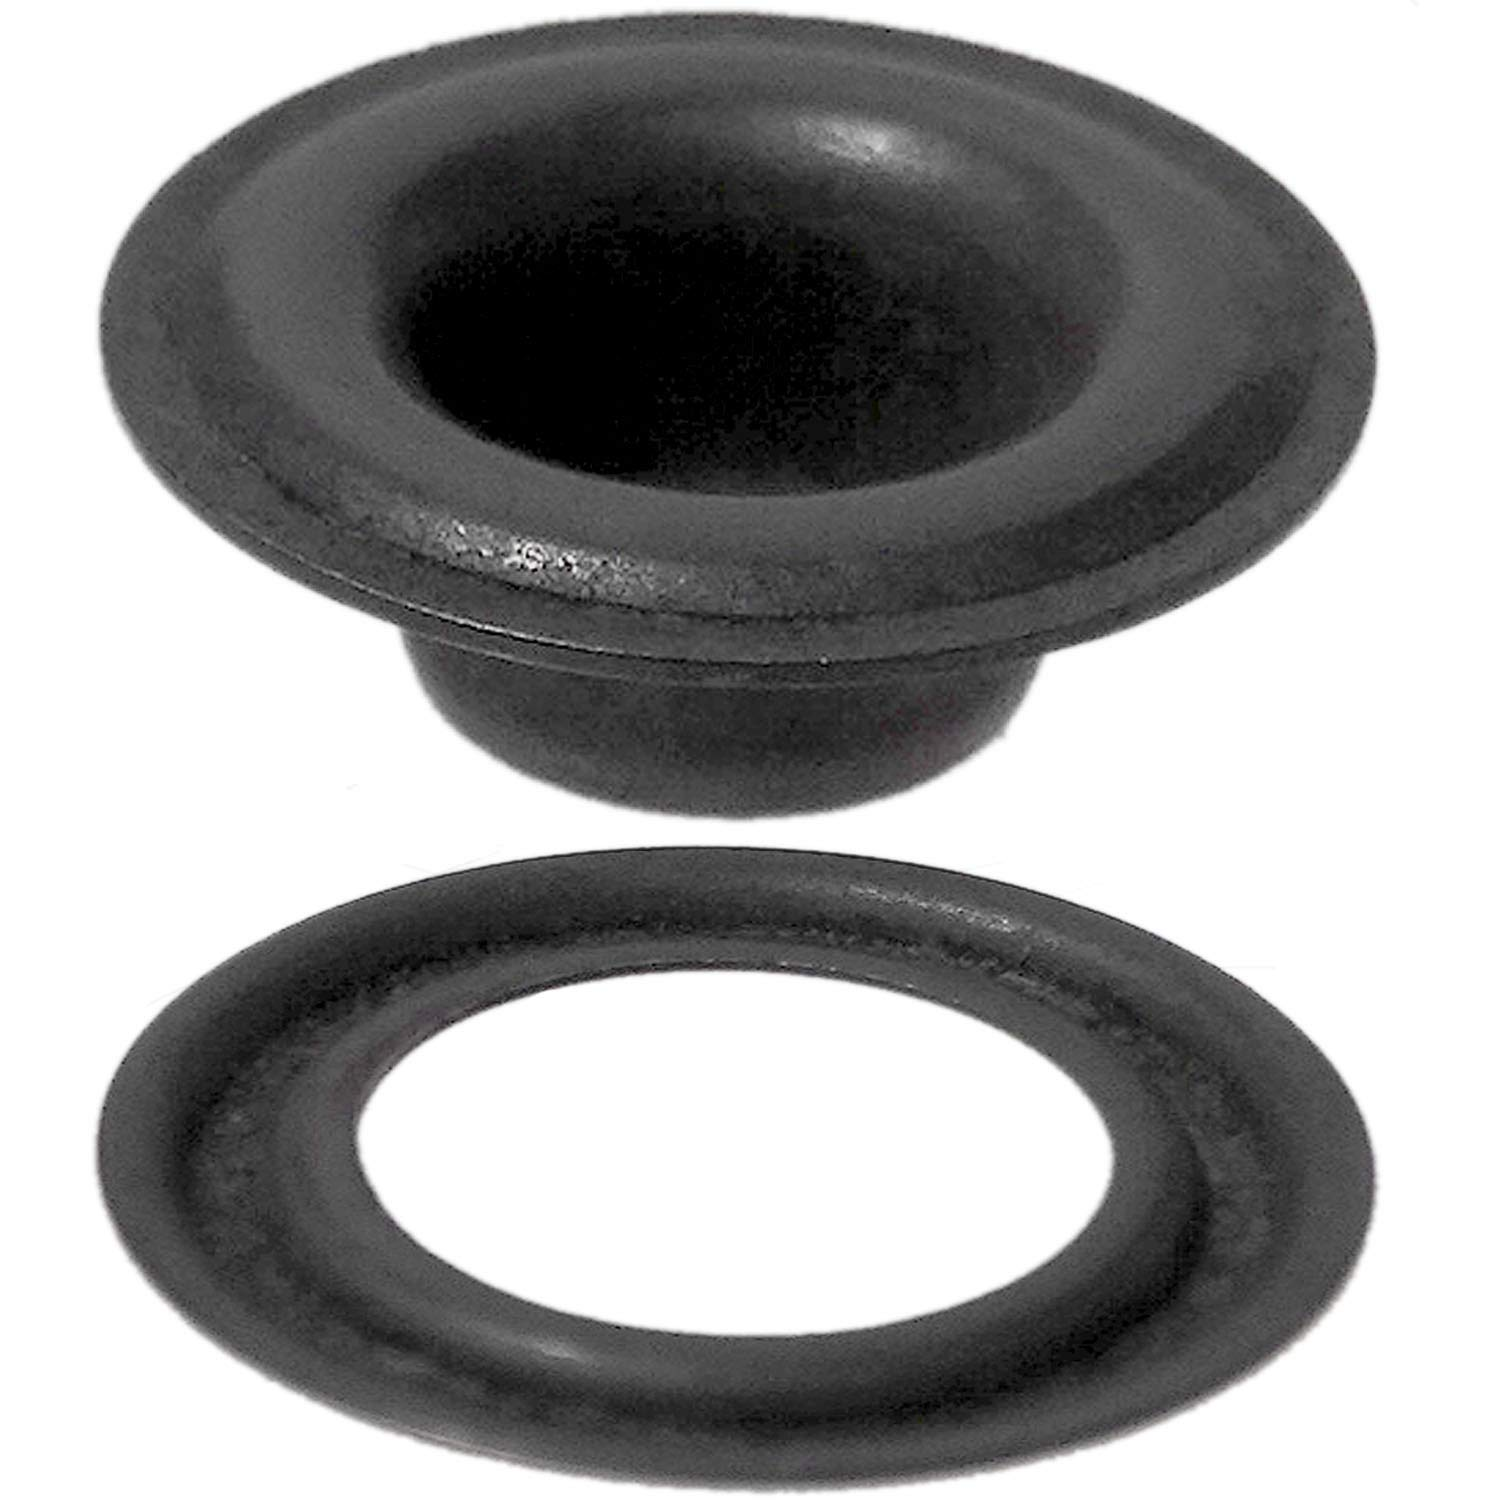 Stimpson Self-Piercing Grommet and Washer Dull Black Chem Reliable, Durable, Heavy-Duty #2 Set (500 pieces of each)